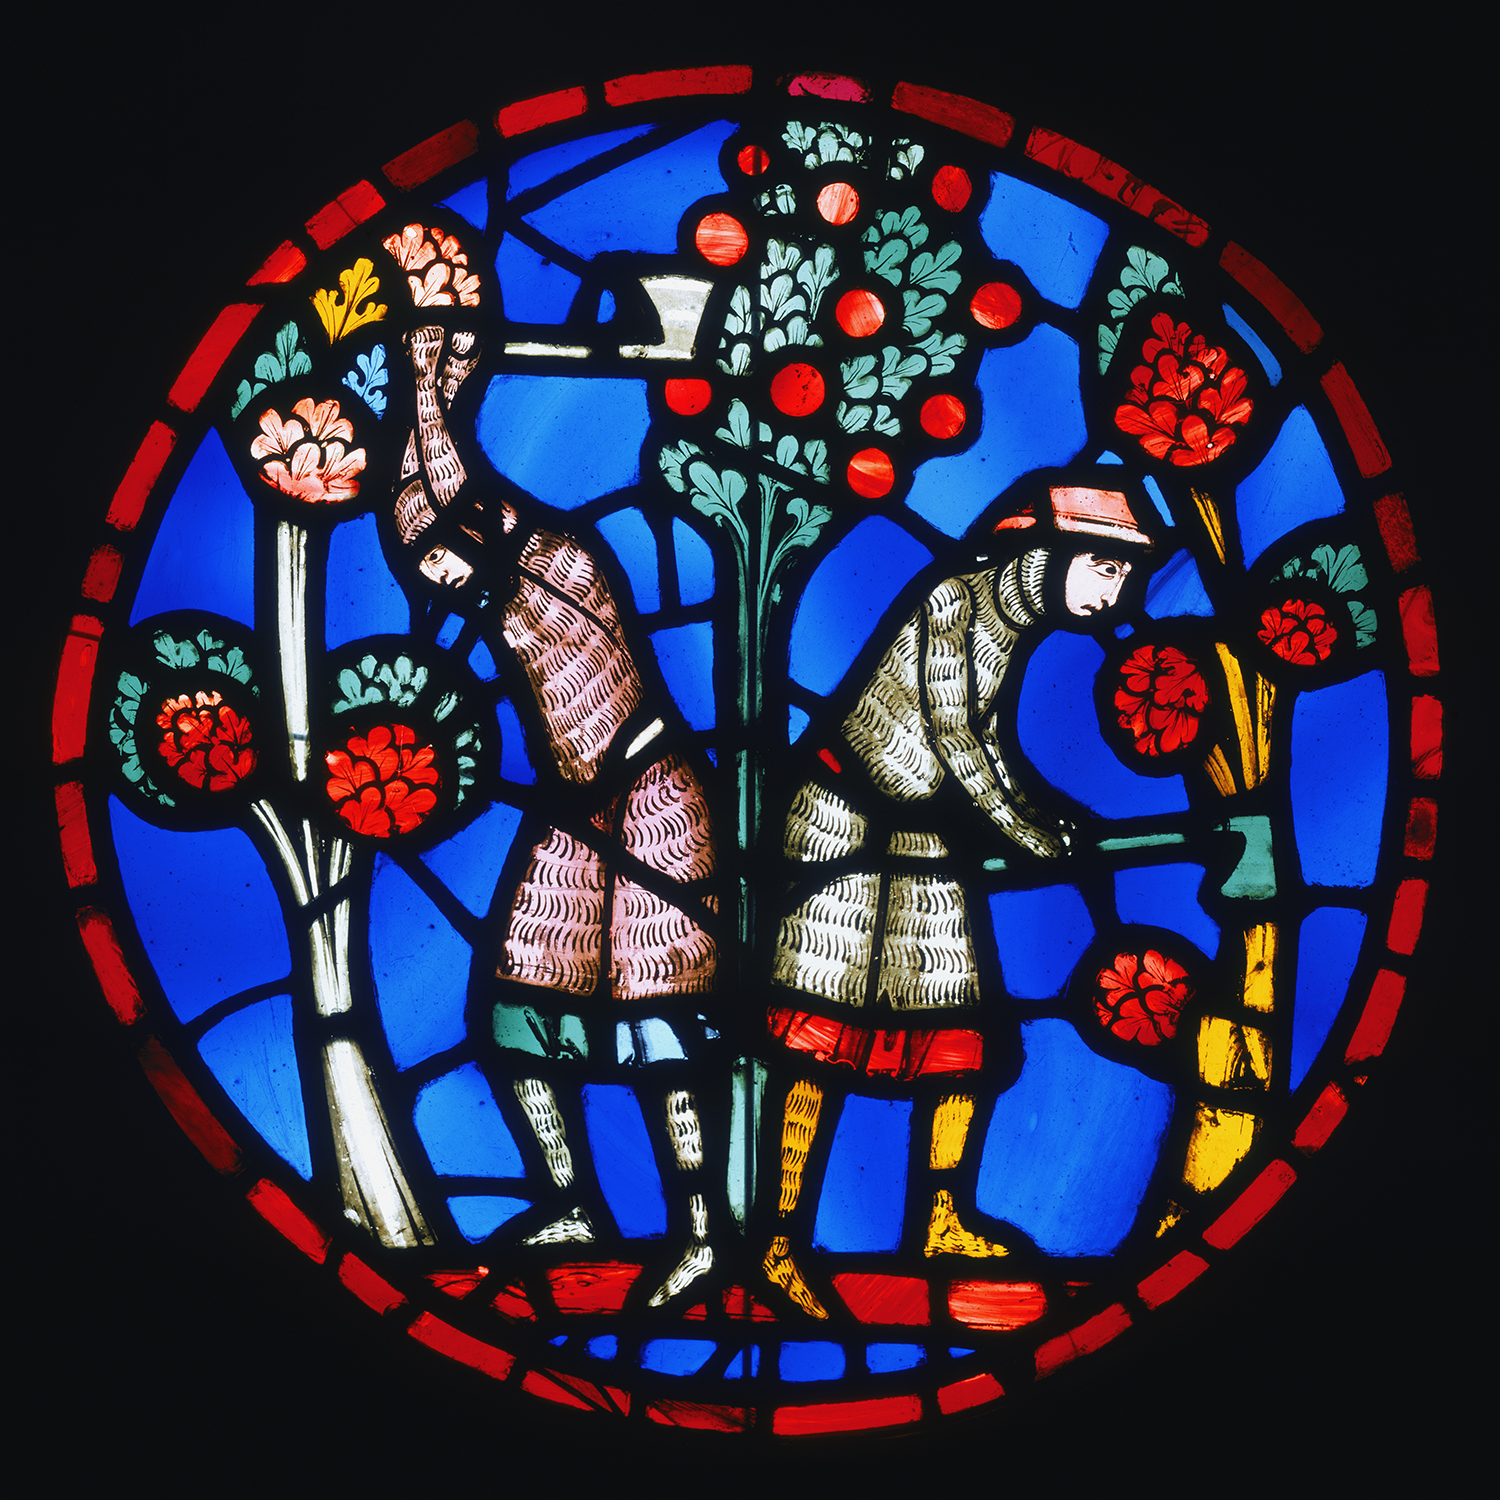 Figure 6: Roundel showing the Orchards Outside Damascus Devastated by Holofernes's Army, from the Sainte Chapelle, Paris, c. 1246-48, stained glass, 23 ¾ in diameter, Philadelphia Museum of Art: Purchased with funds contributed by Mrs. Clement Biddle Wood in memory of her husband, 1930-24-1.